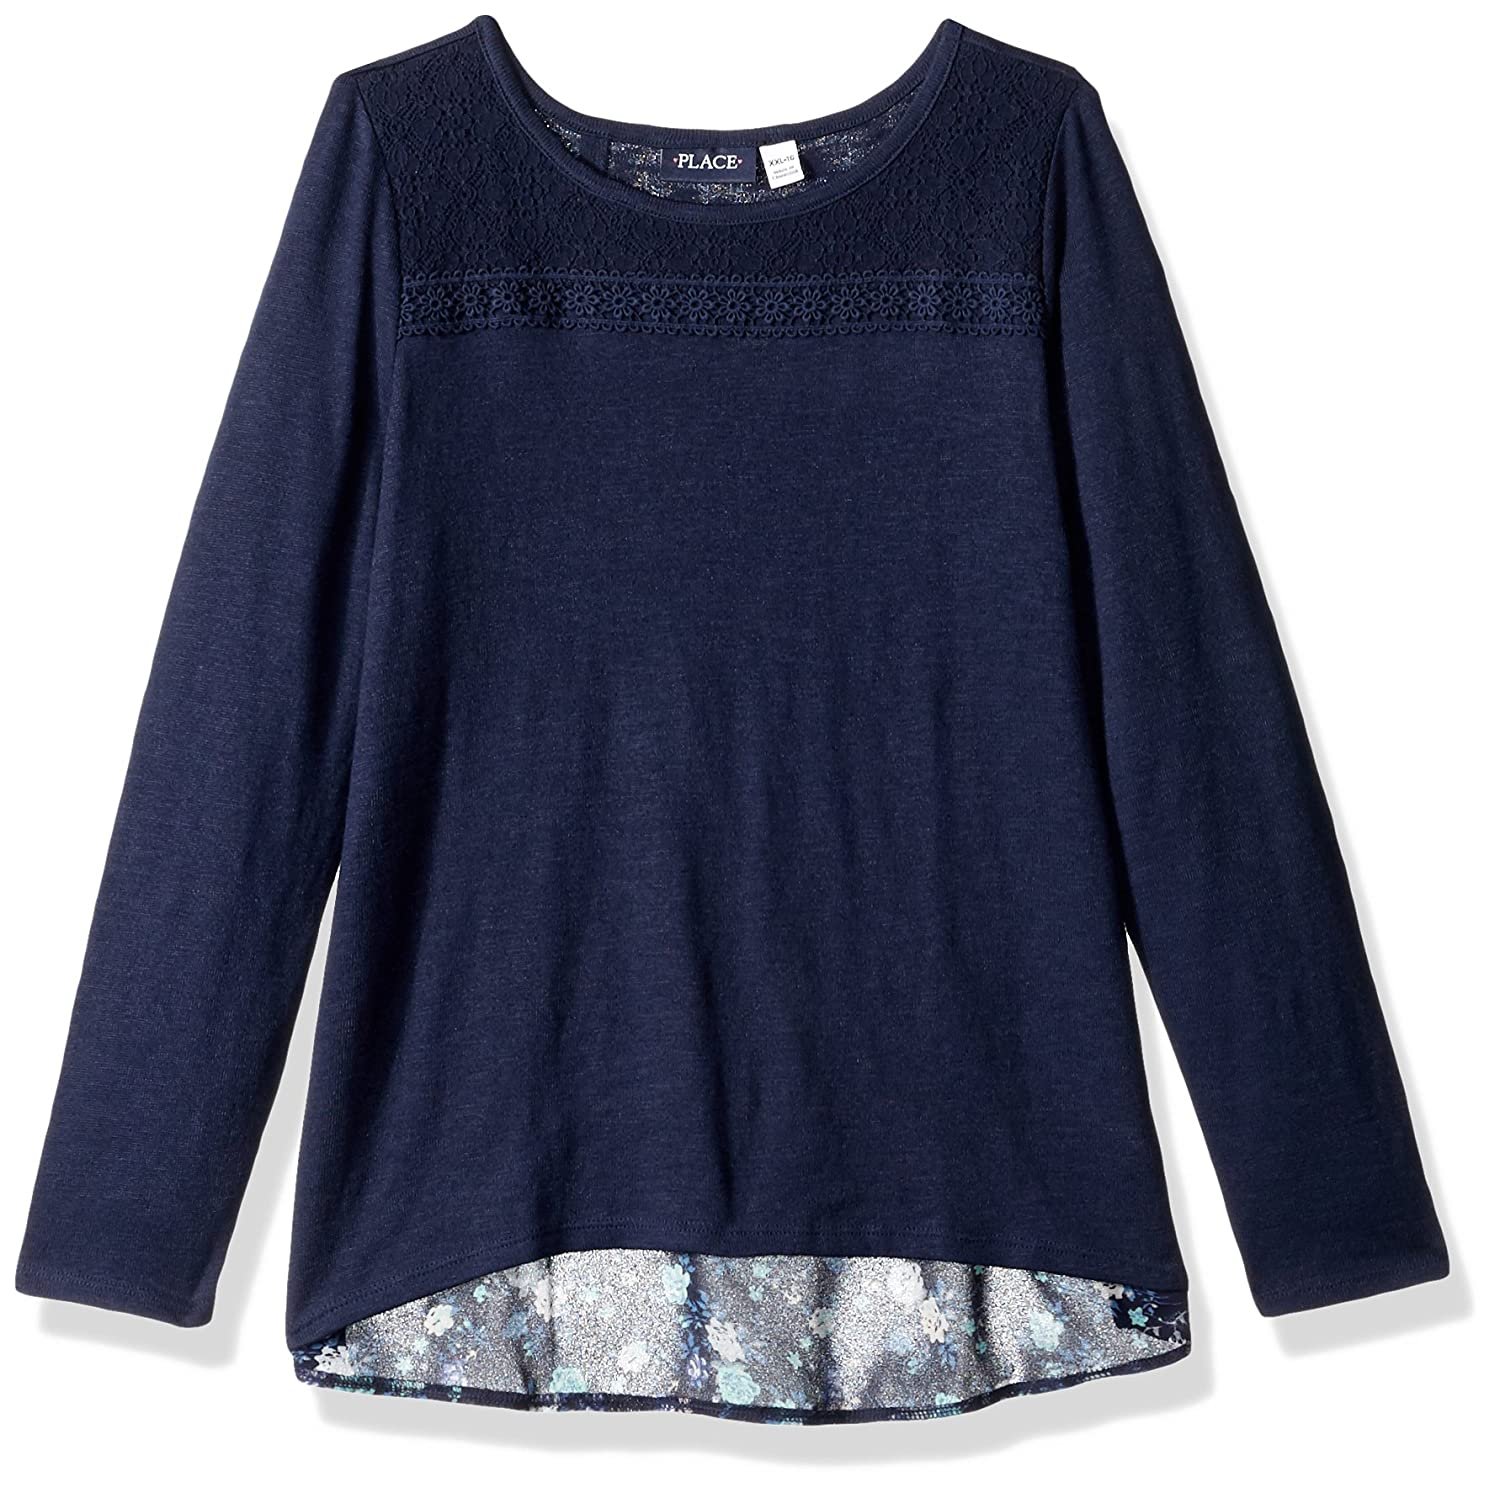 The Children's Place Girls' Long Sleeve Top 2